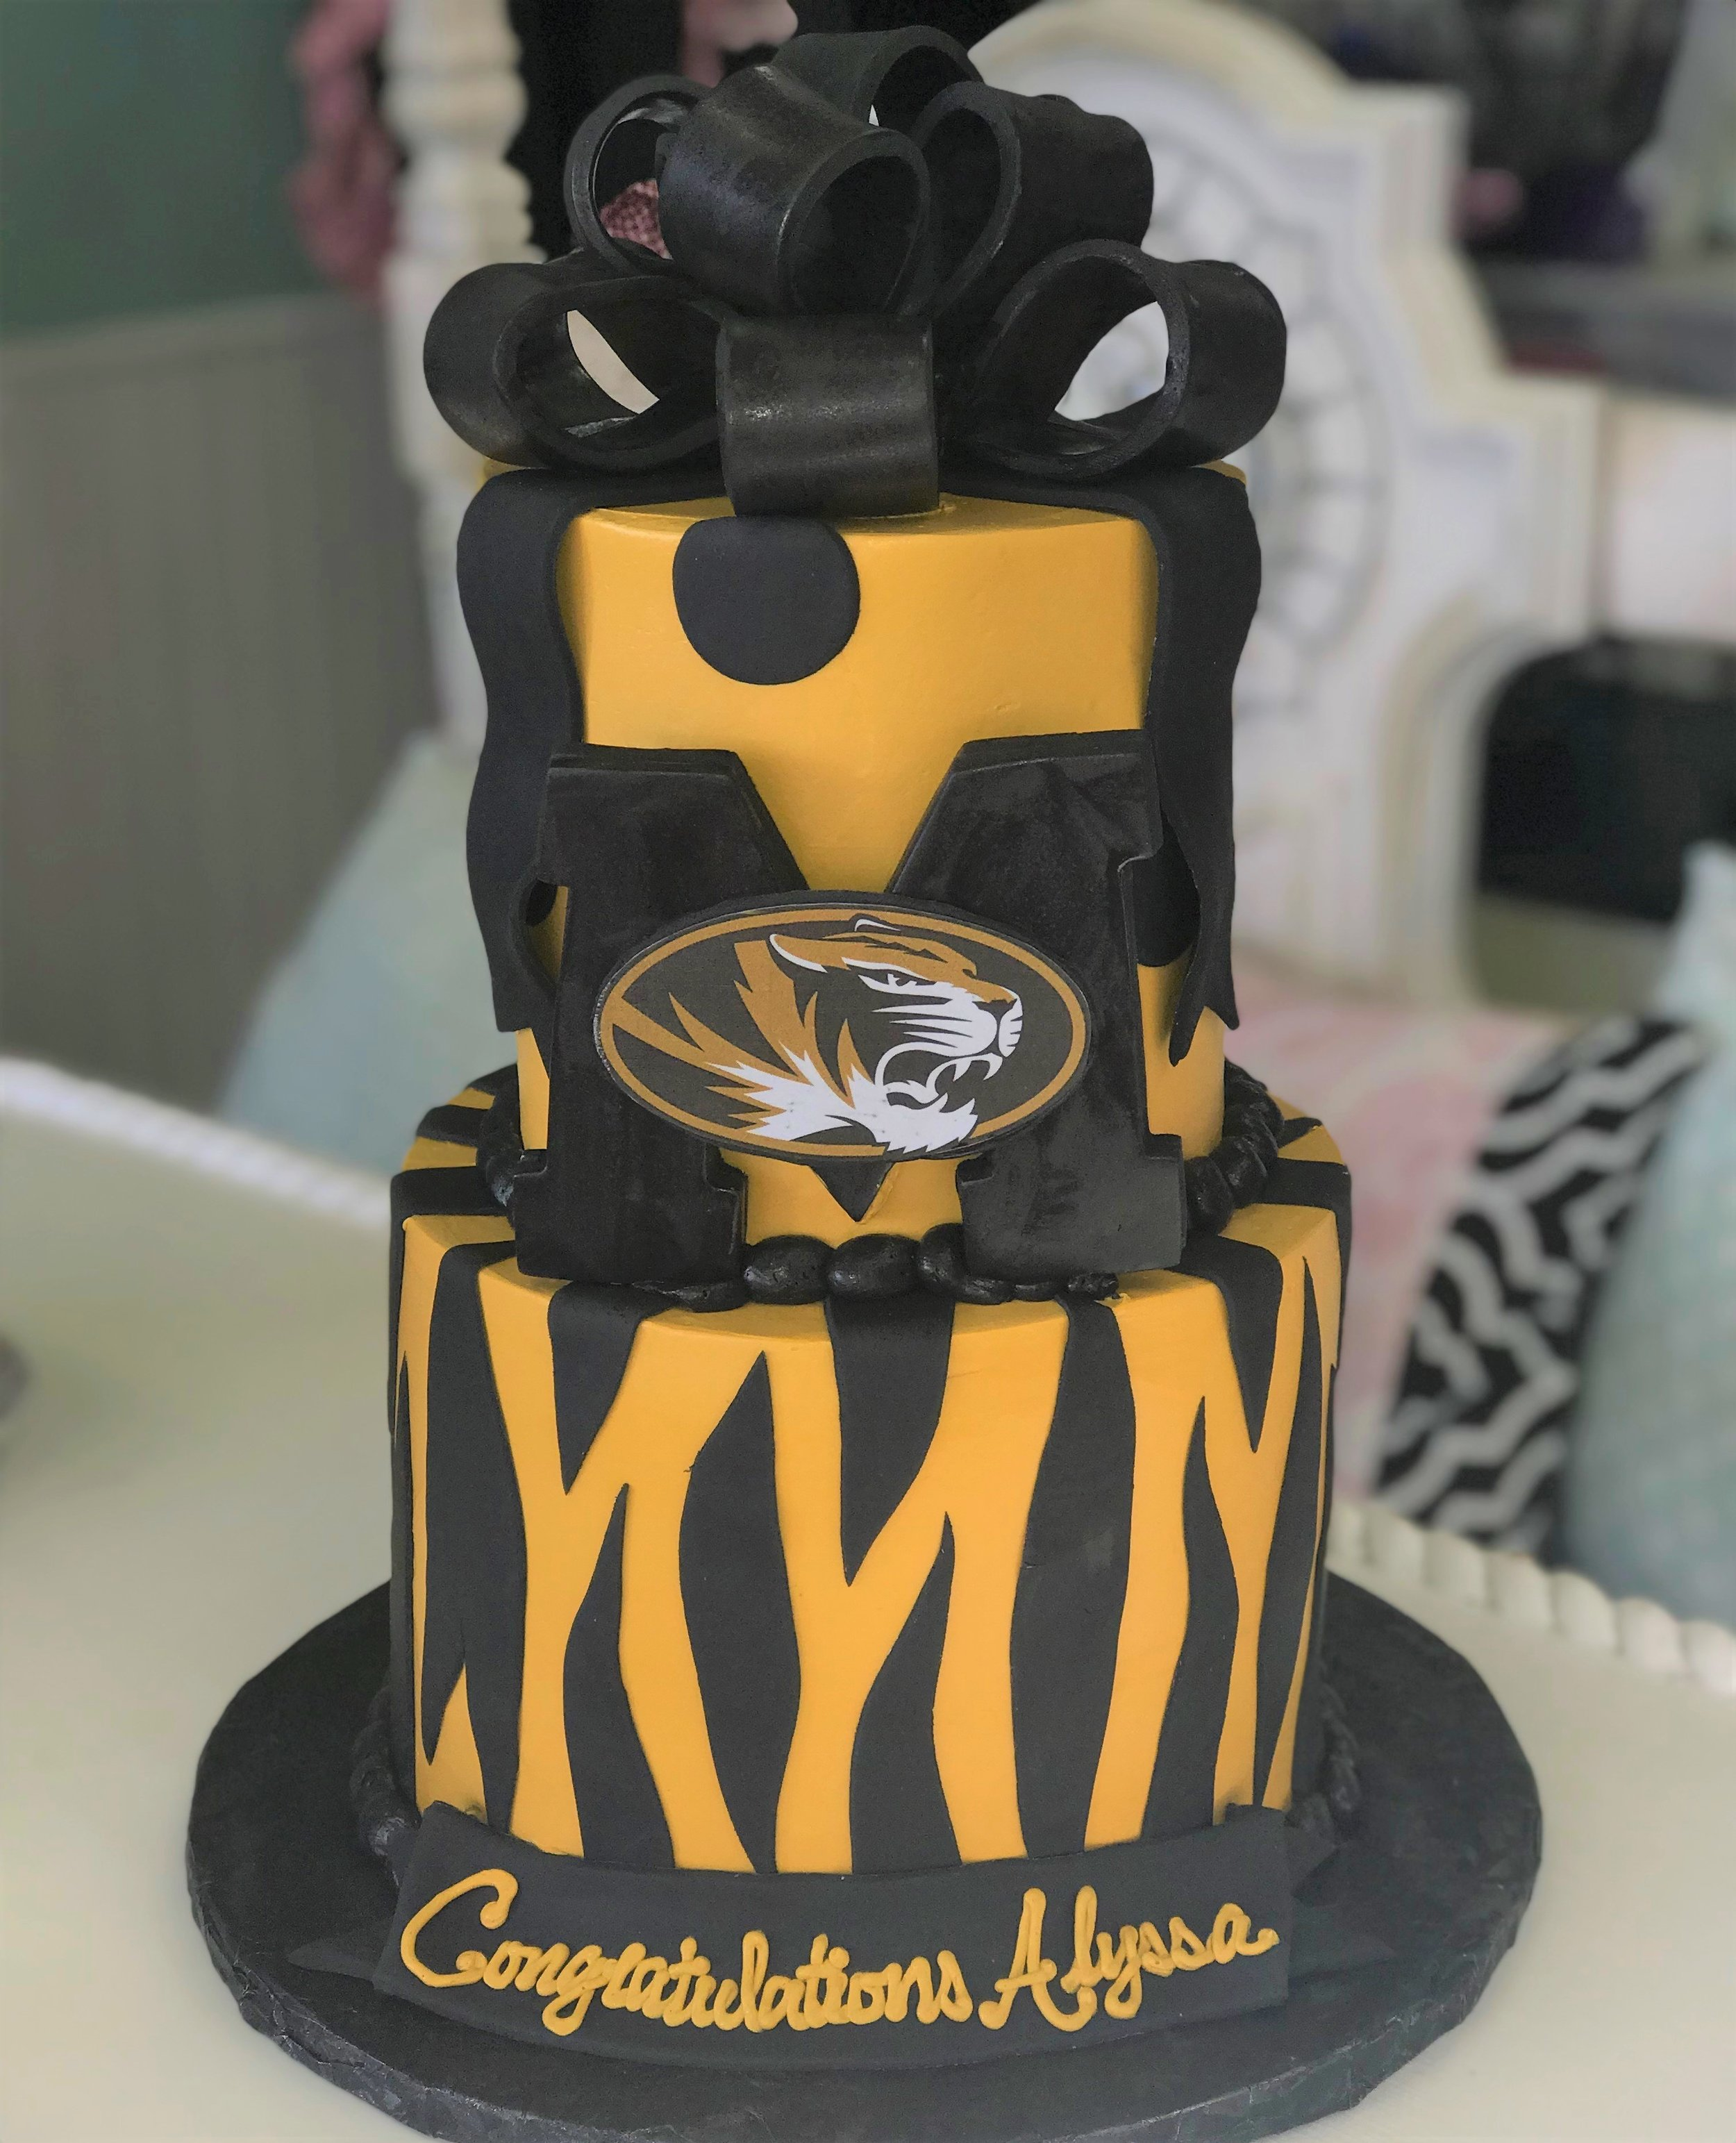 mizzou grad cake with bow and tiger stripes.jpg